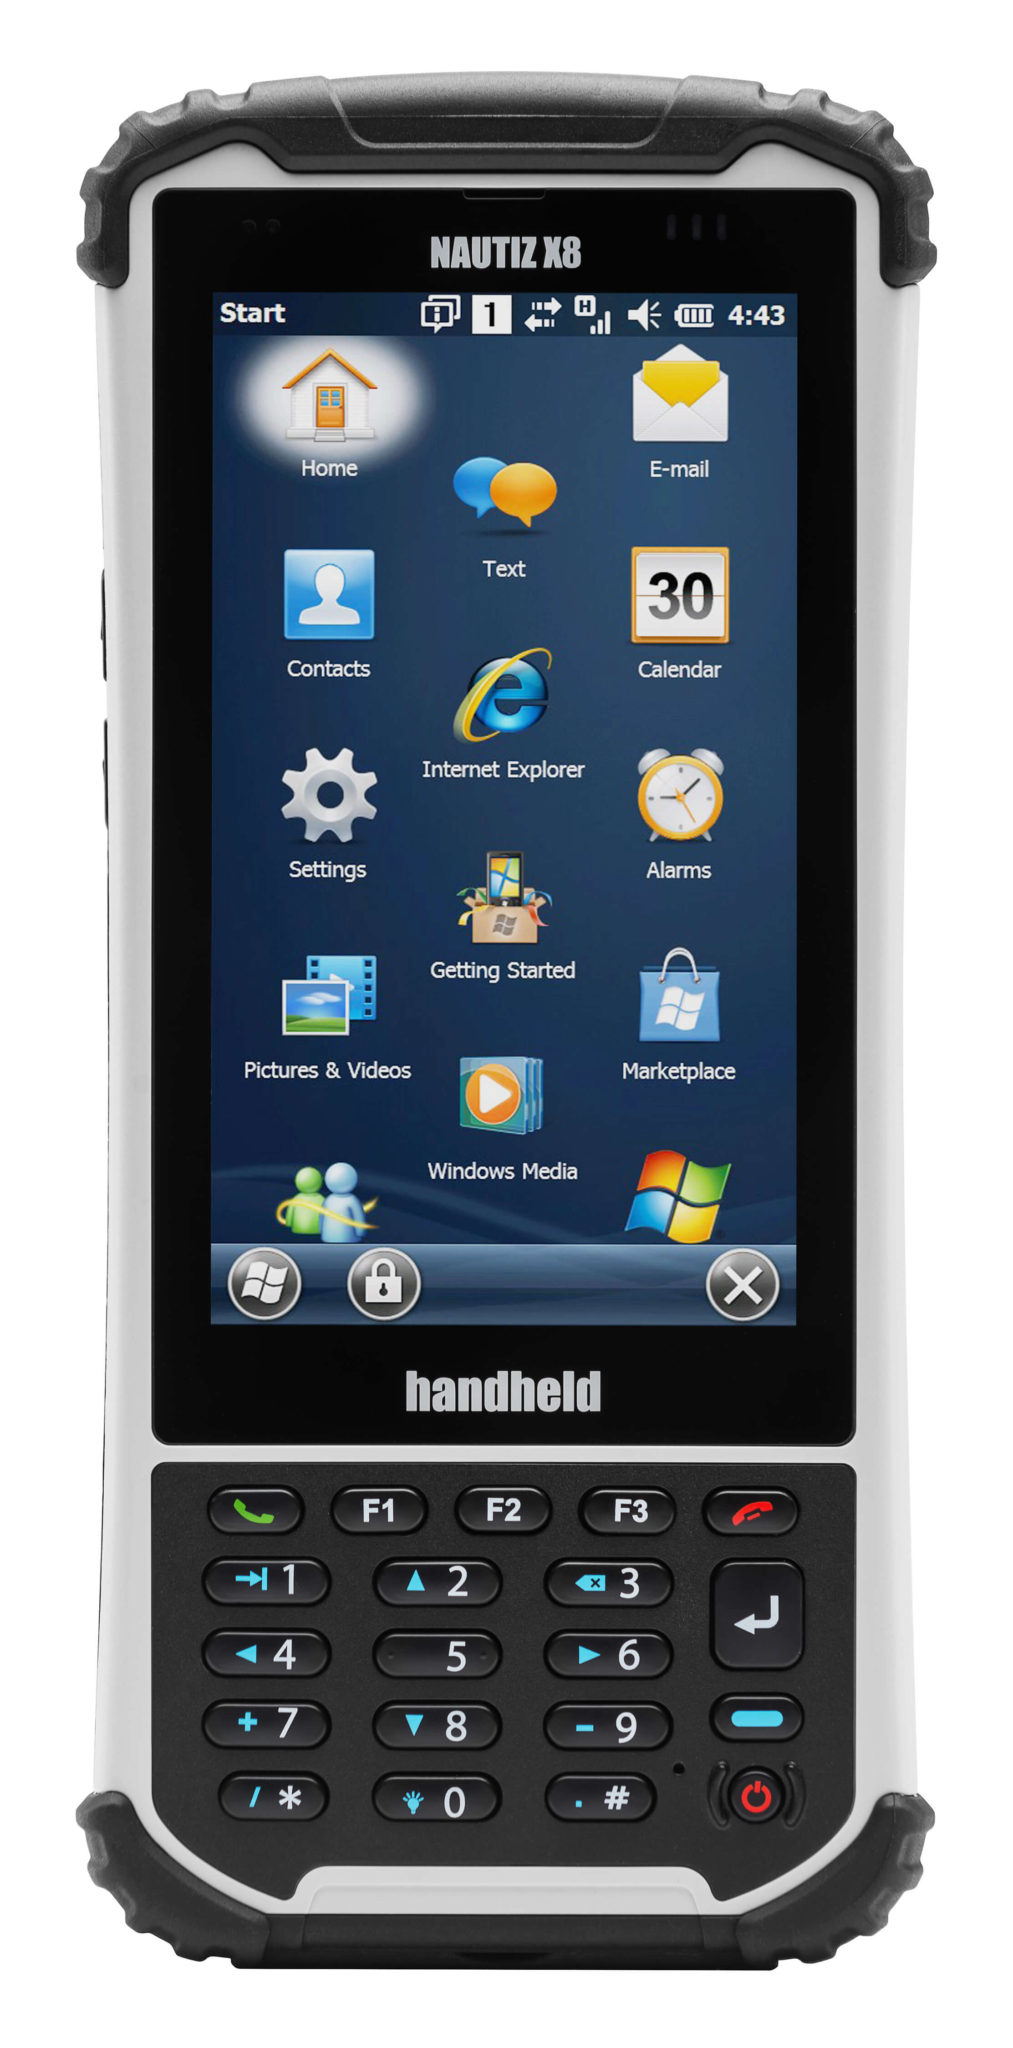 nautiz-x8-handheld-rugged-front-screen